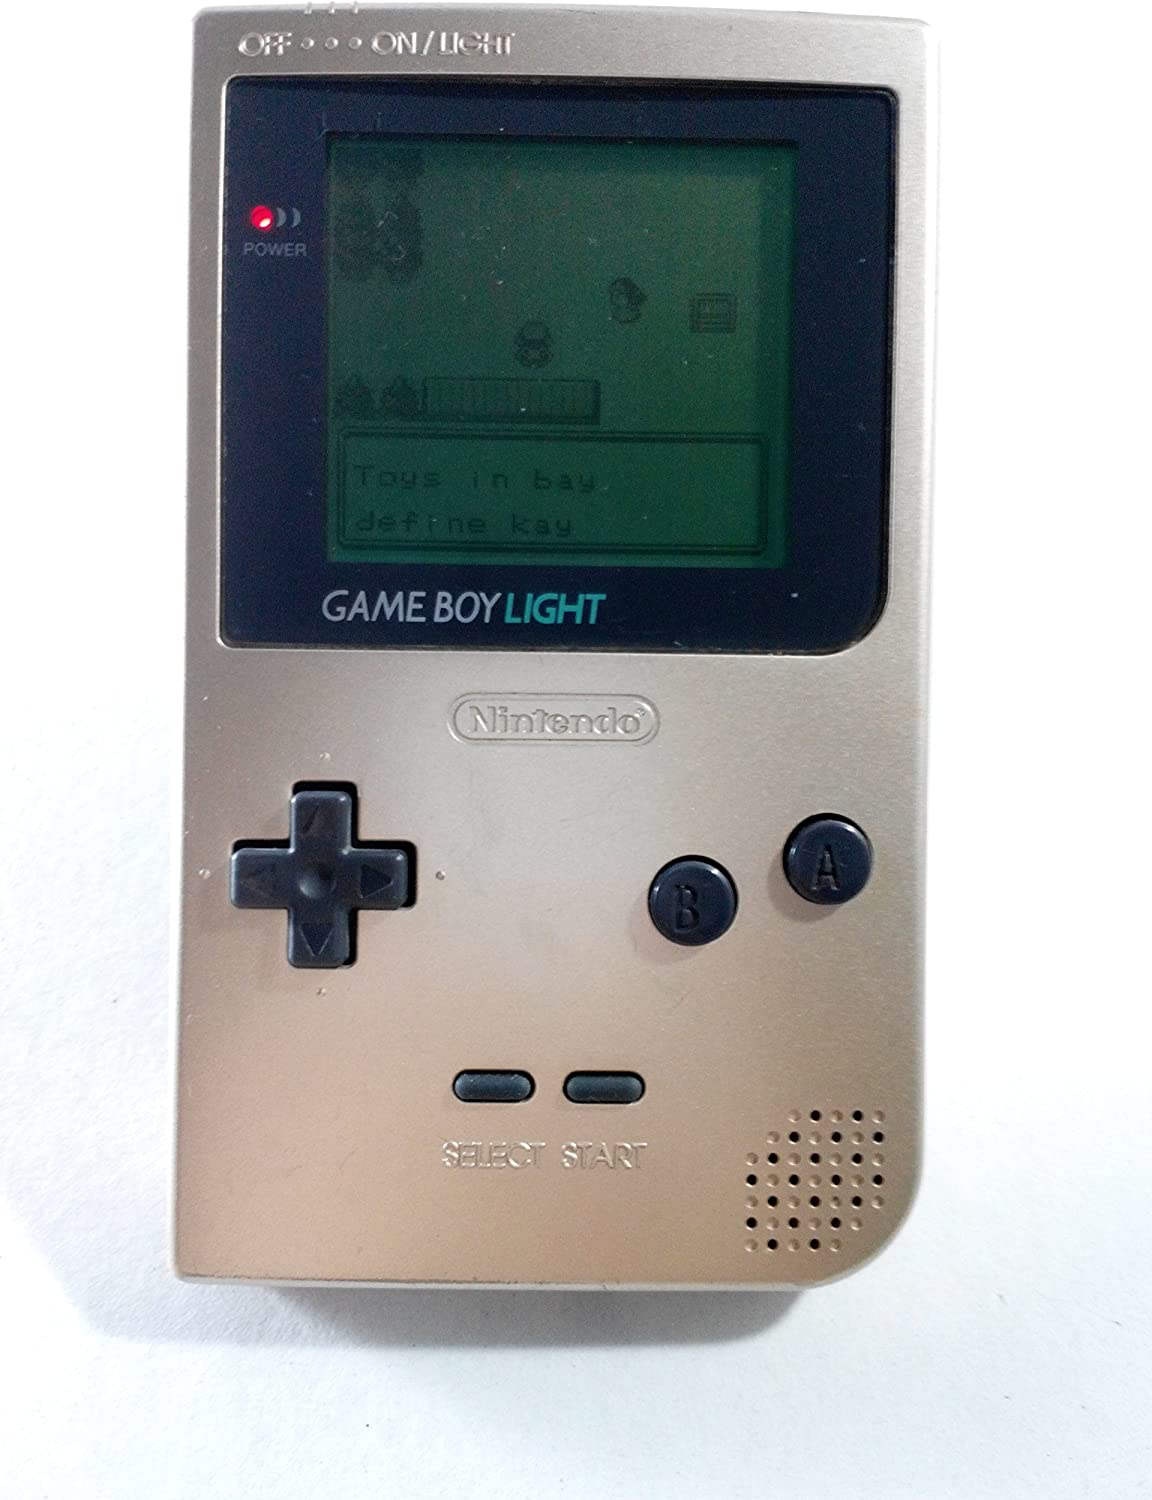 Game Boy Light – Gold Japanese Import Video Game System